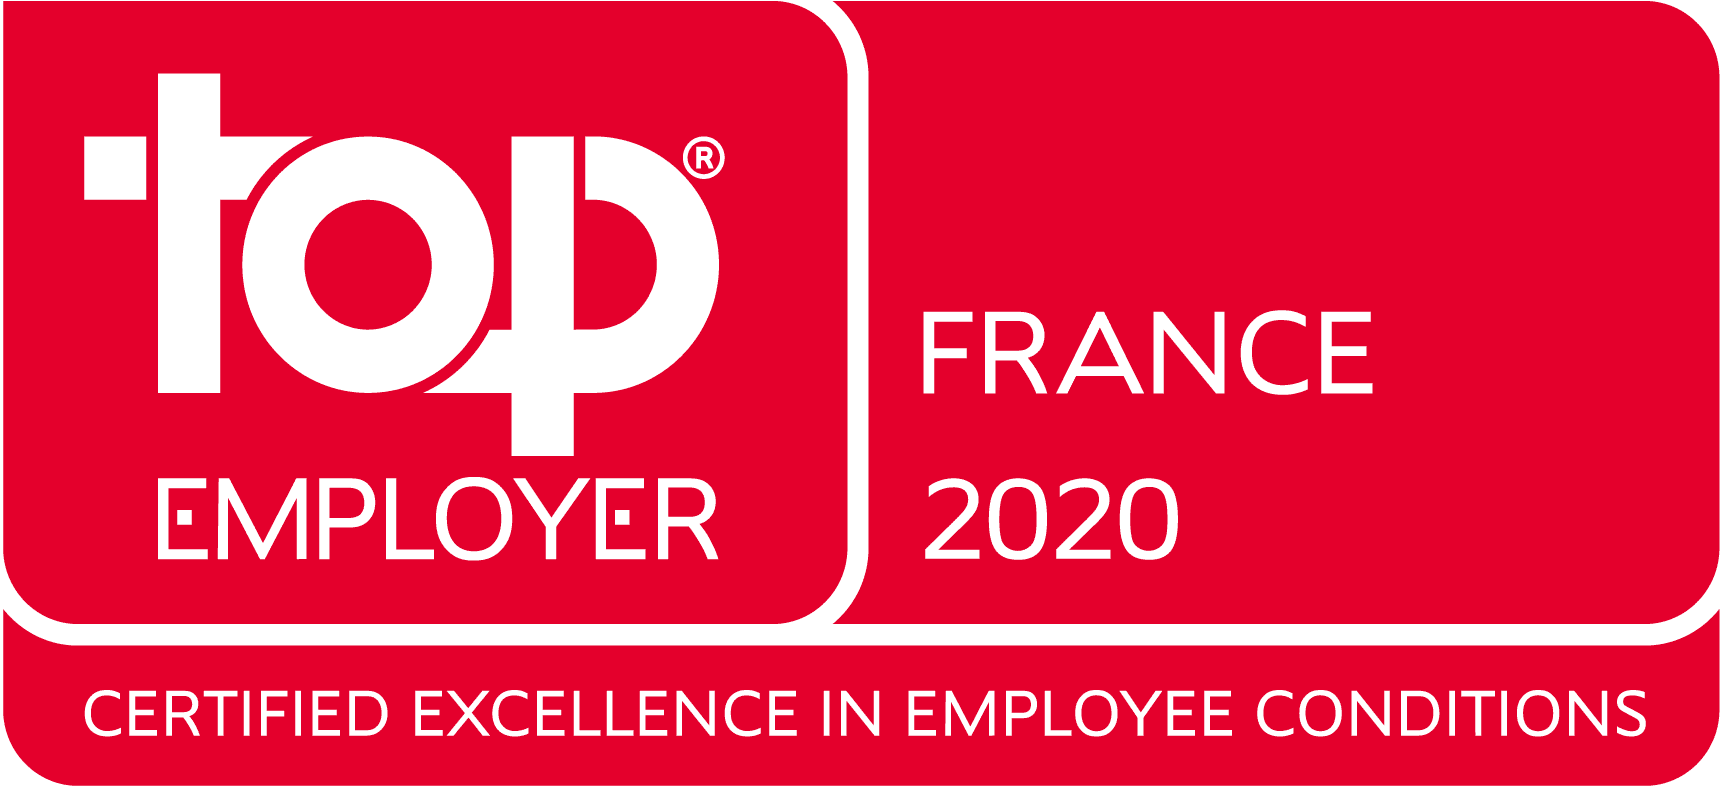 Top Employer France 2020 Logo